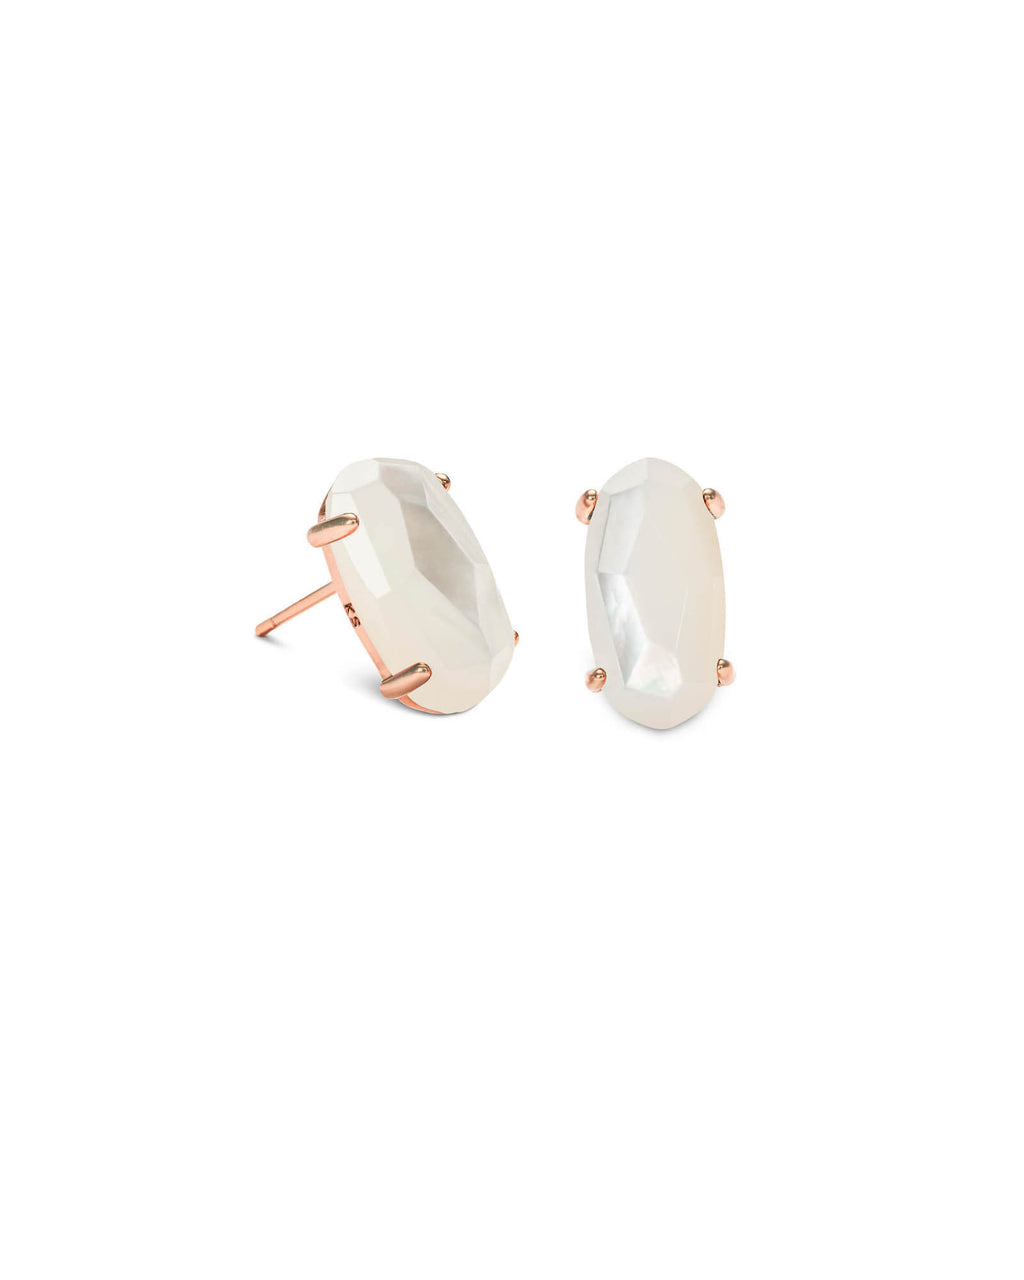 KENDRA SCOTT Betty Rose Gold Stud Earrings - Ivory Mother of Pearl